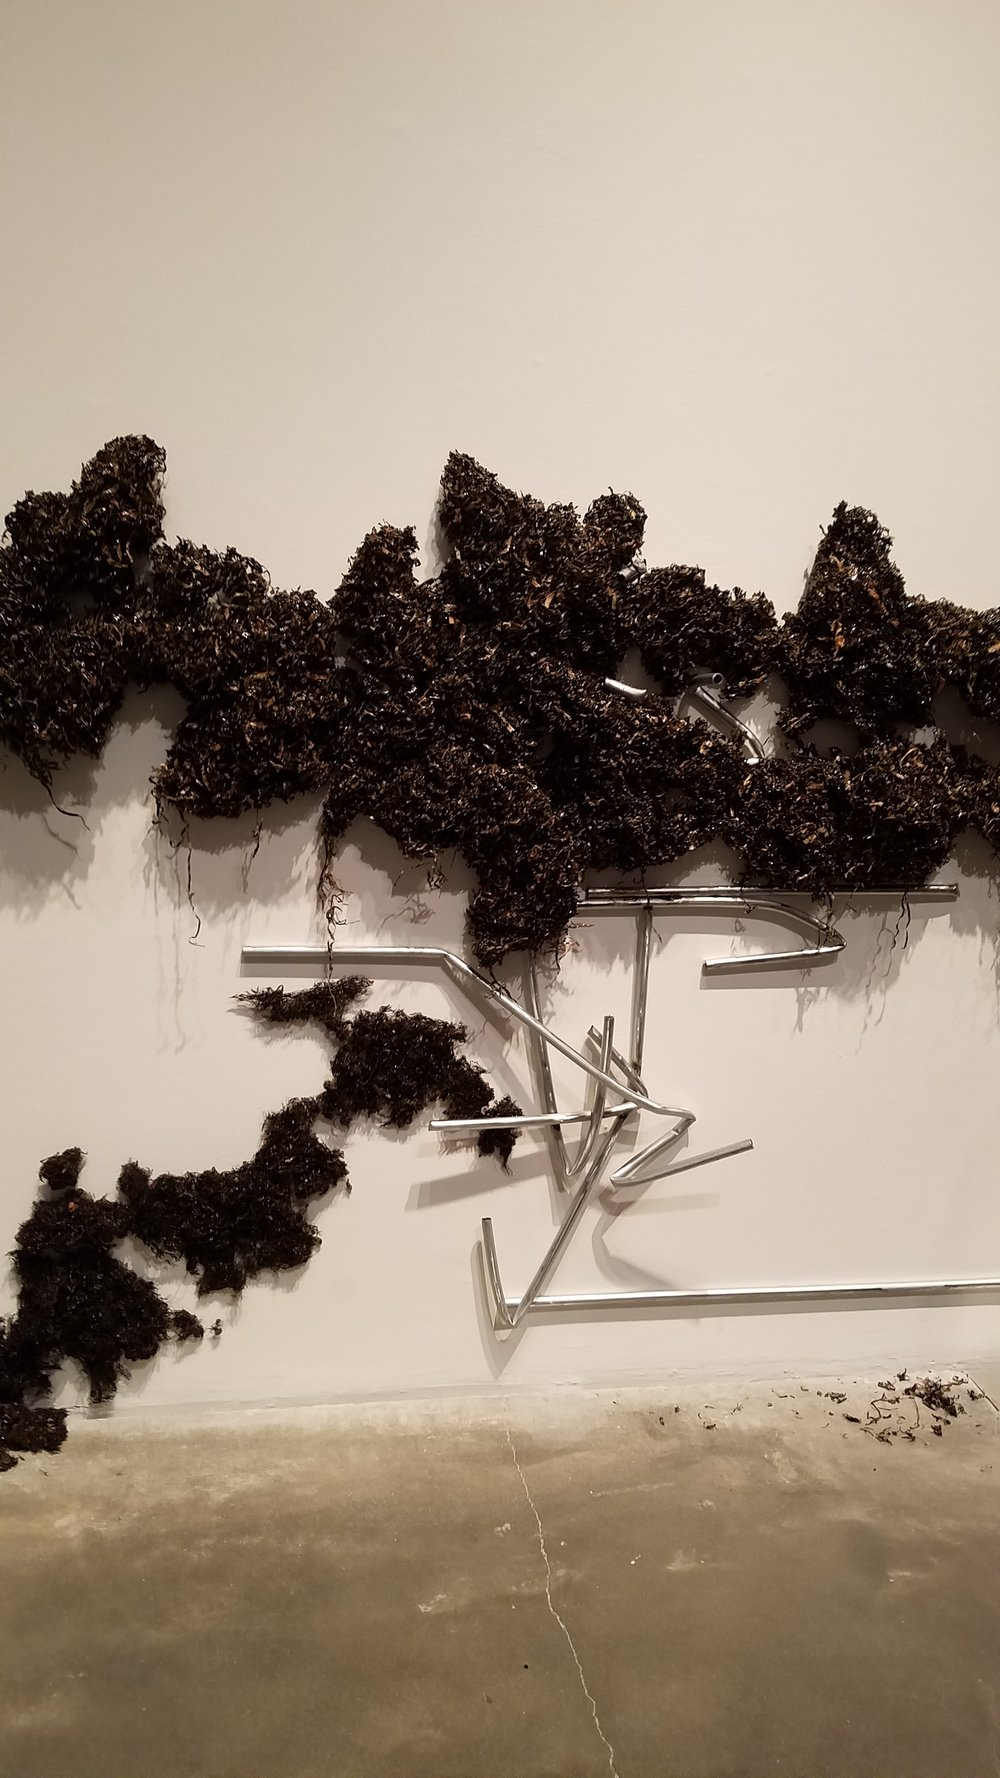 Violet Dennison (b. 1989, Bridgeport, CT),  M.O.O.P. , 2018, seagrass collected in the Florida Keys, resin, and electrical metallic tubing conduit, courtesy of the artist